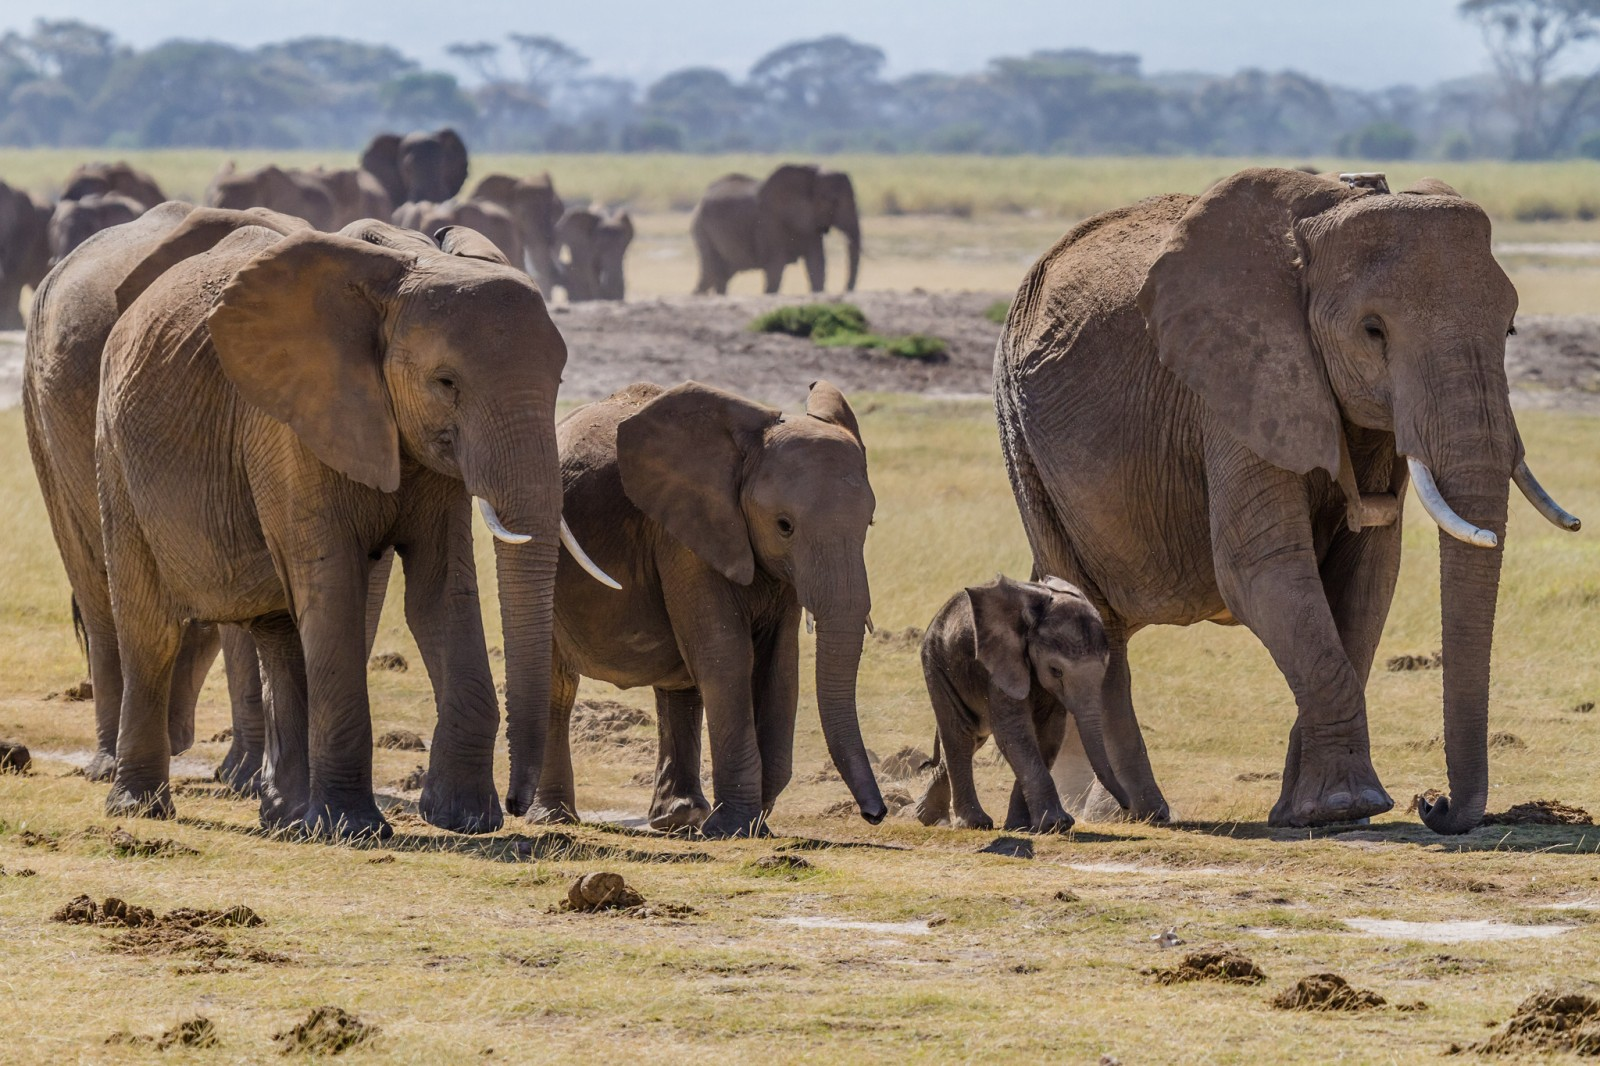 5 Tear-Jerking Videos That Prove Elephants Are as Emotional as We Are